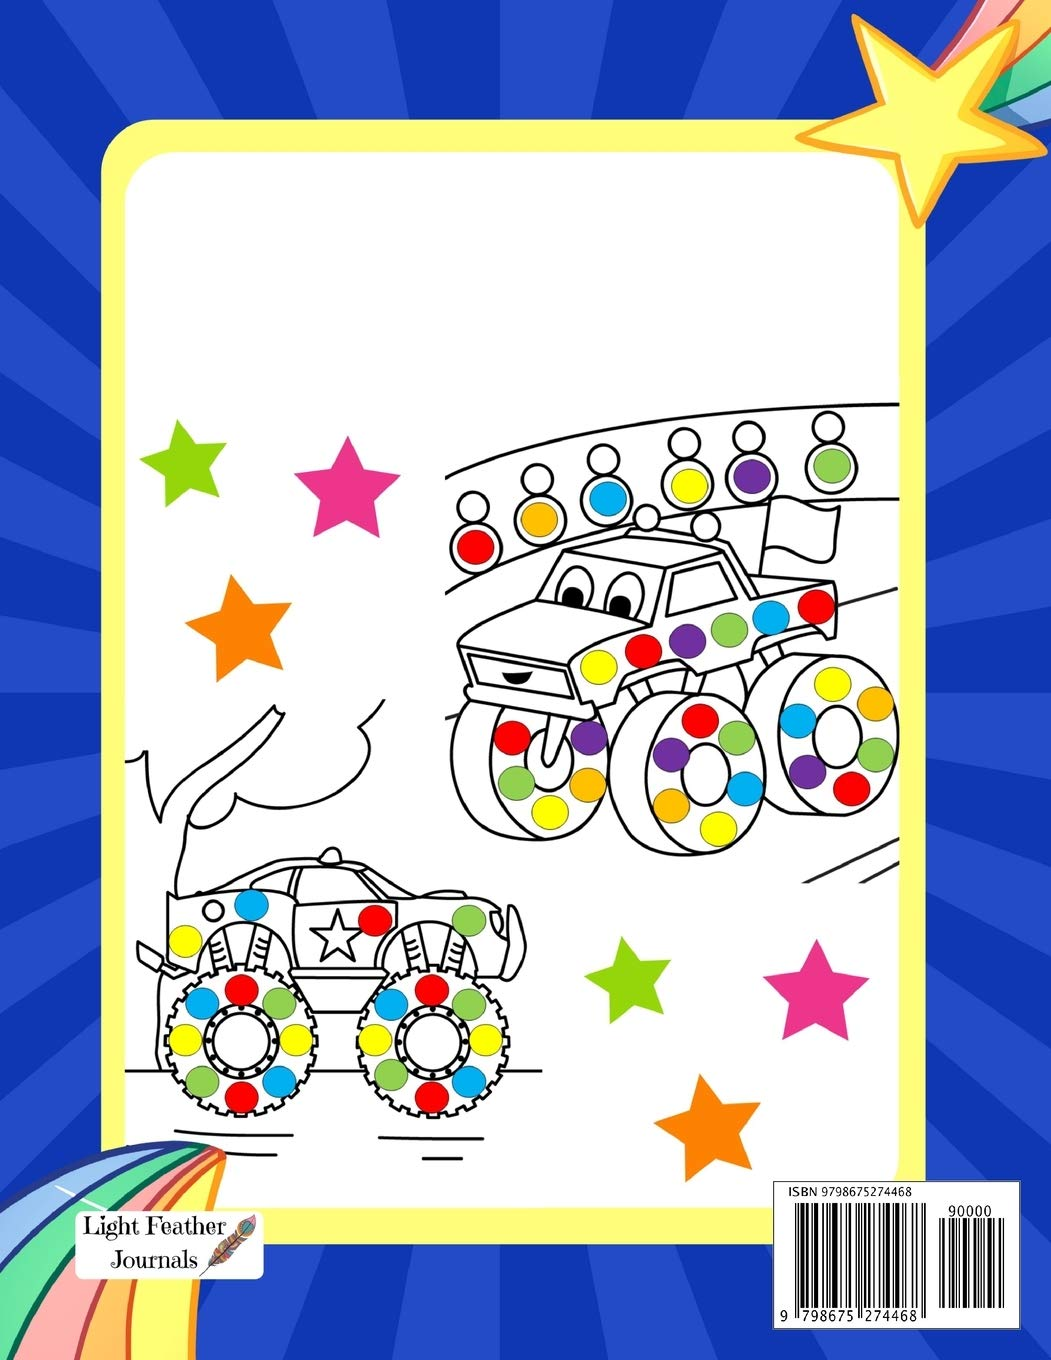 Big Dots Coloring Book Dot Markers Activity Book For Toddlers Ages 2 4 Mighty Trucks Cars And Vehicles Paint Daubers Coloring Book Journals Light Feather 9798675274468 Amazon Com Books